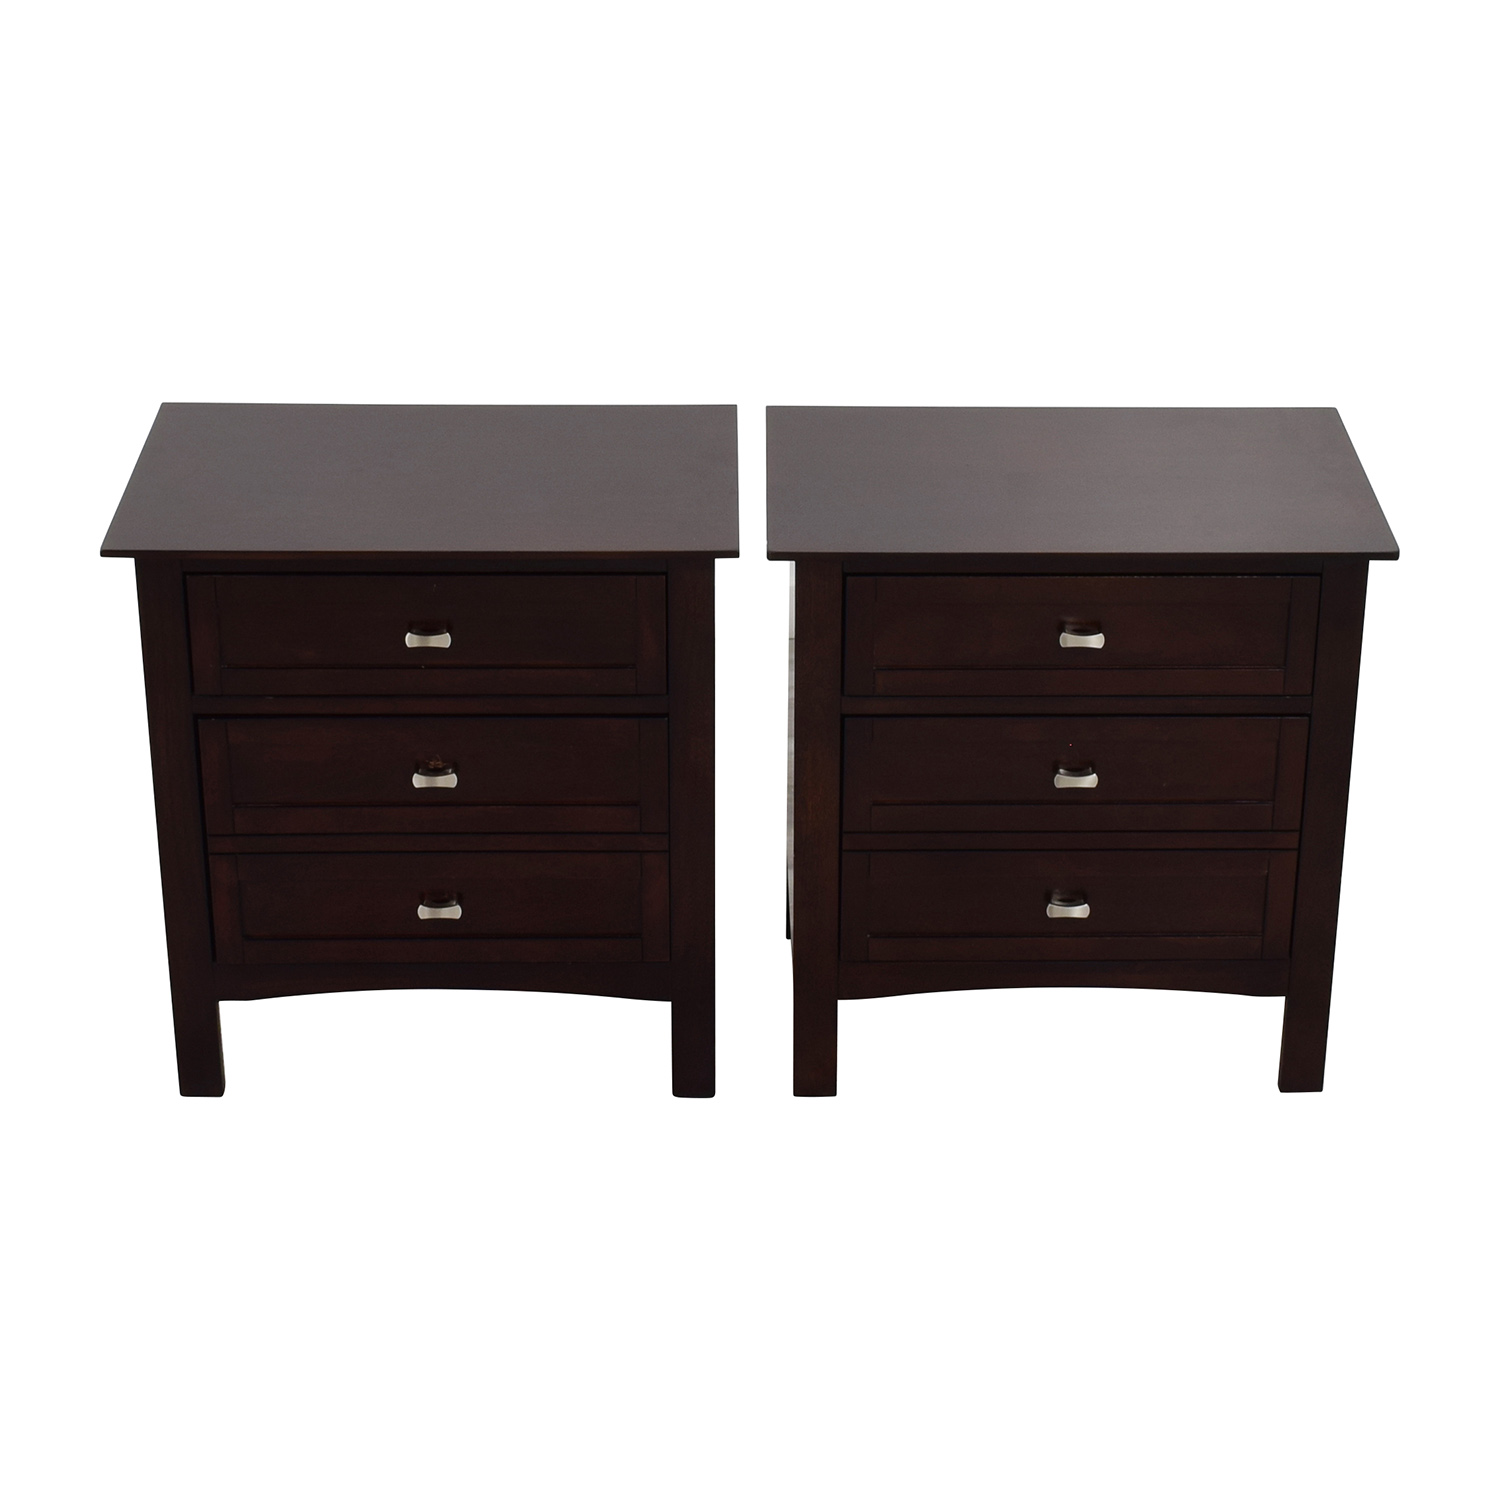 shop Bobs Furniture Bobs Furniture Brown Wood Night Stands online